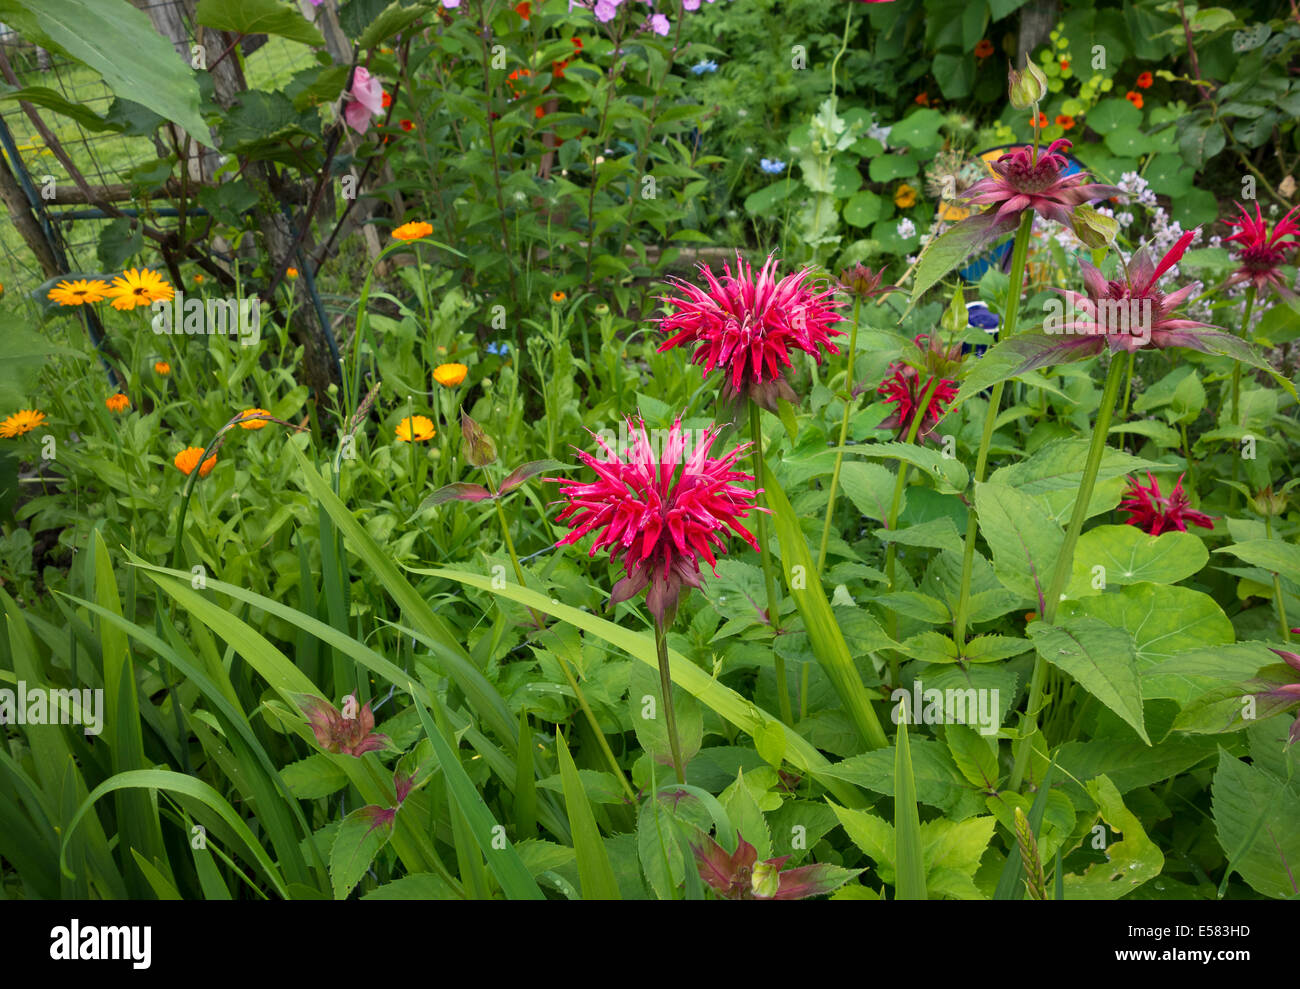 Beautiful hot pink blossoms of bee balm (Monarda) plants, growing in a garden with Calendula flowers in the summer. - Stock Image